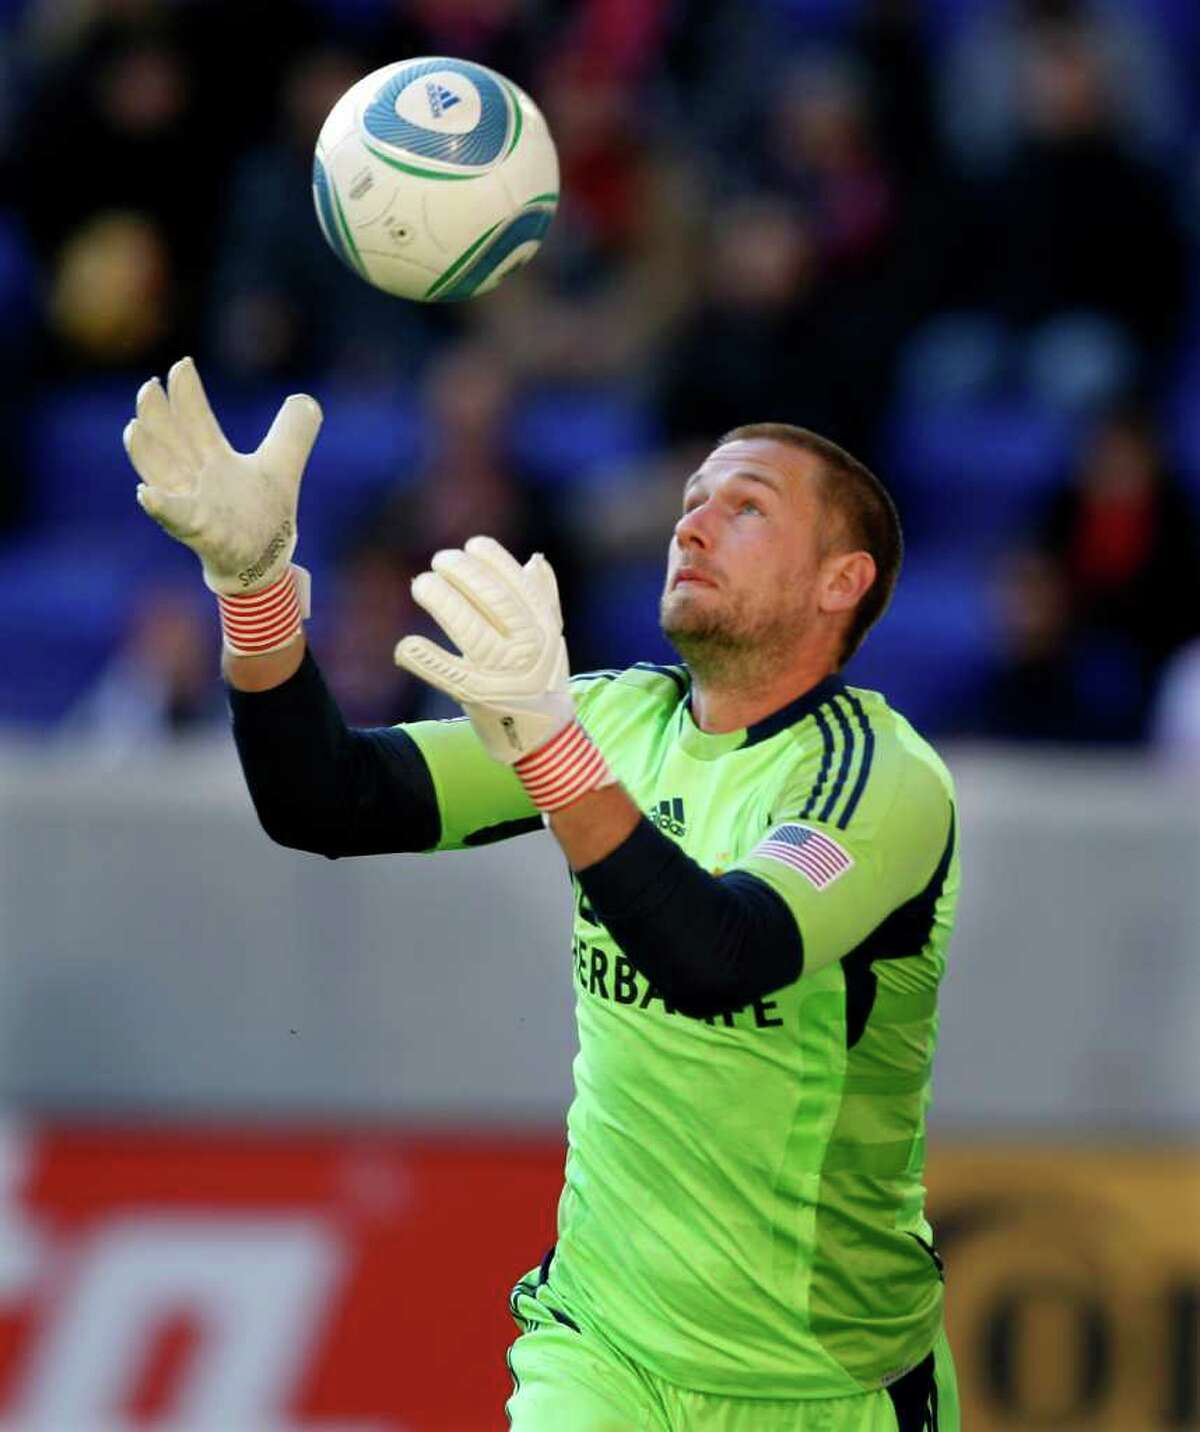 Los Angeles Galaxy goalkeeper Josh Saunders makes a save during the first period of an MLS soccer match against the New York Red Bulls Sunday, Oct. 30, 2011, Newark, N.J. (AP Photo/Mel Evans)